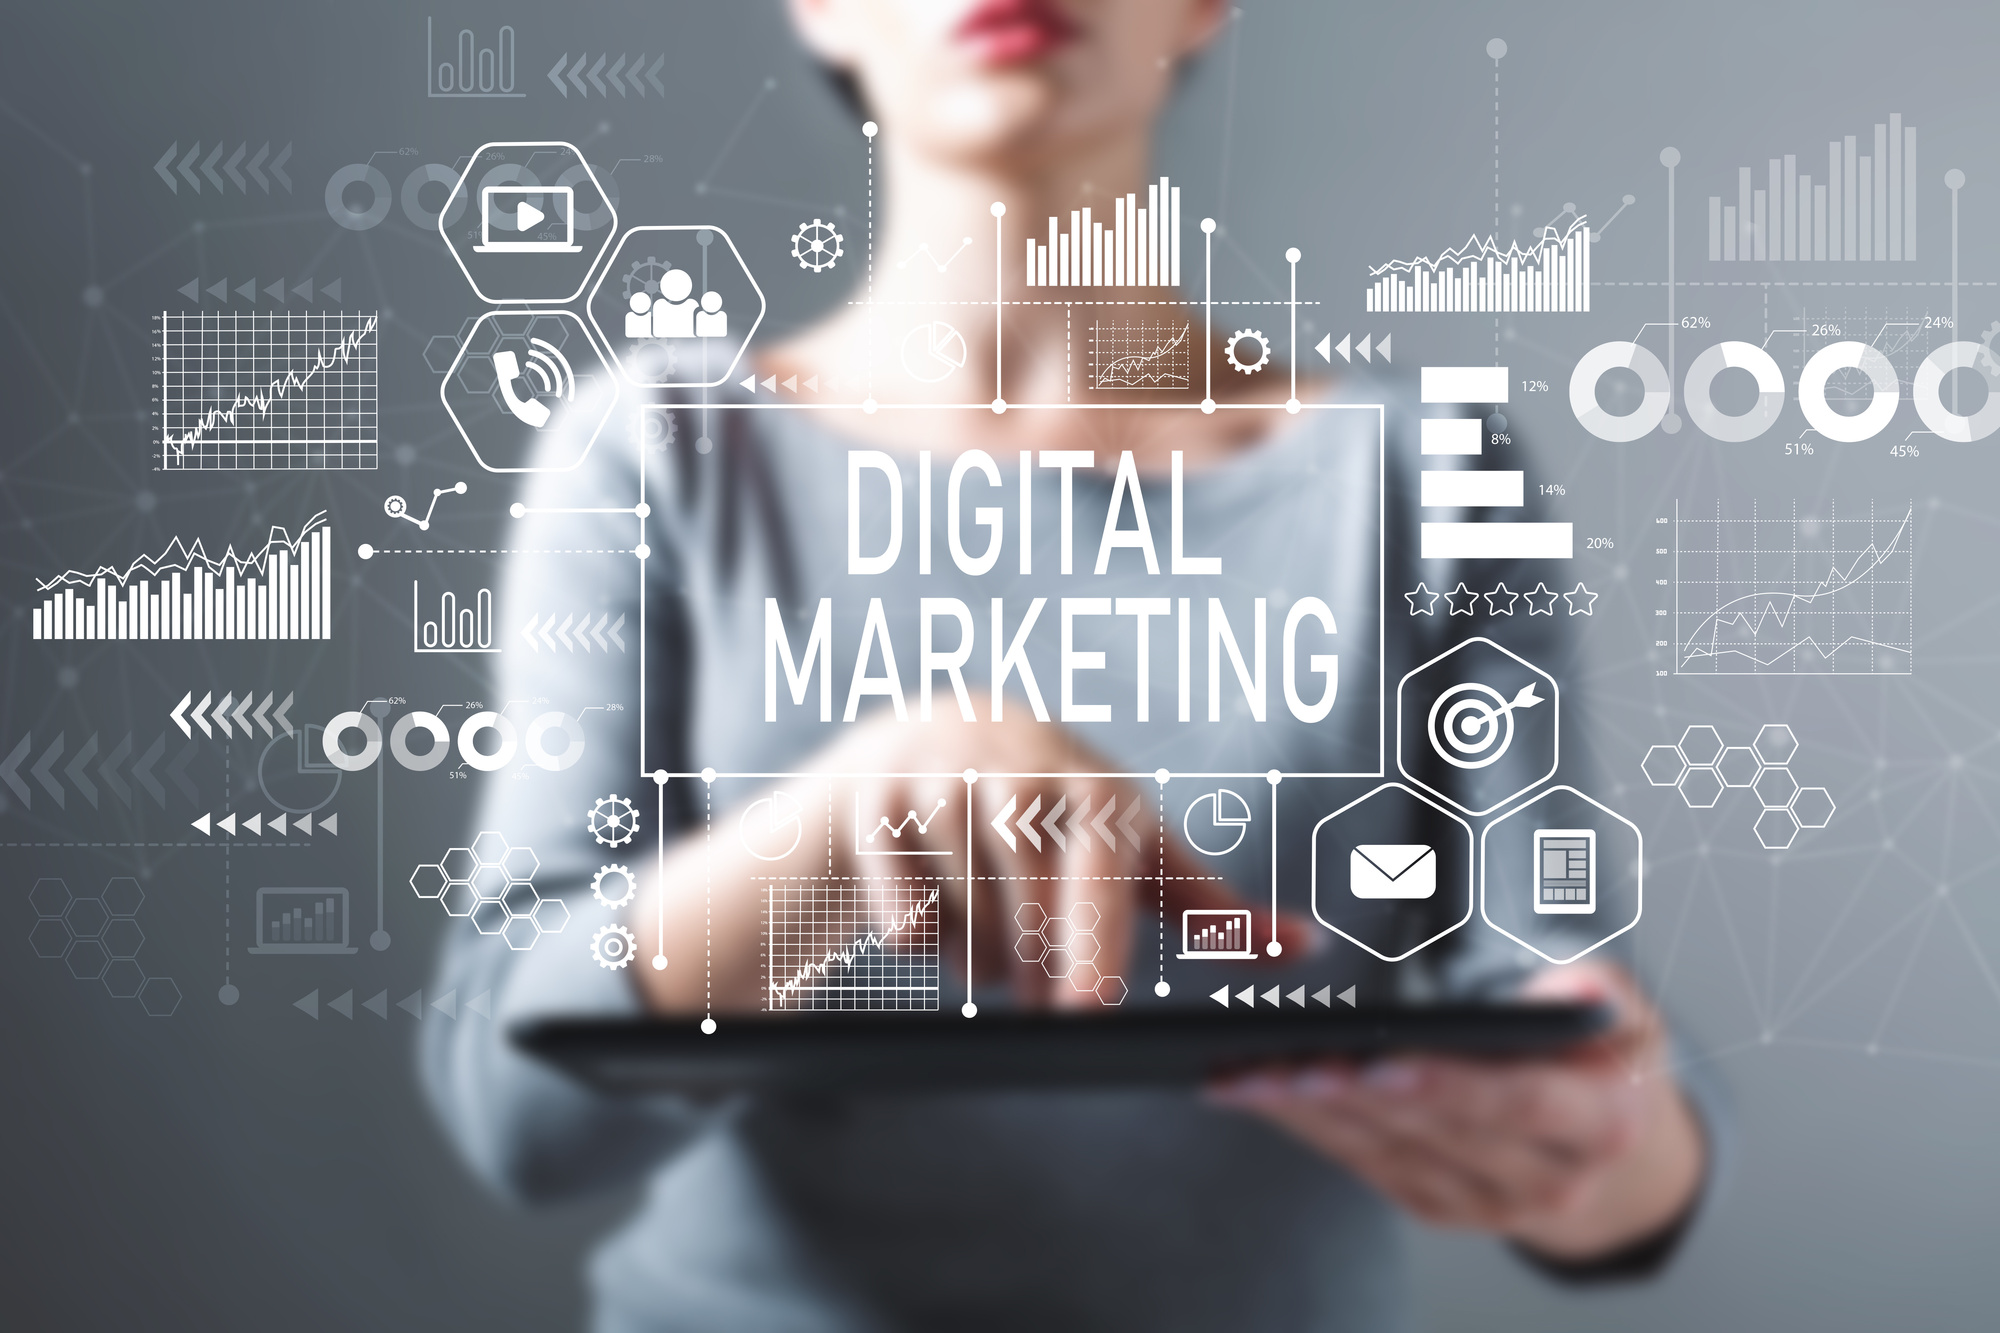 digital marketing text and graphics